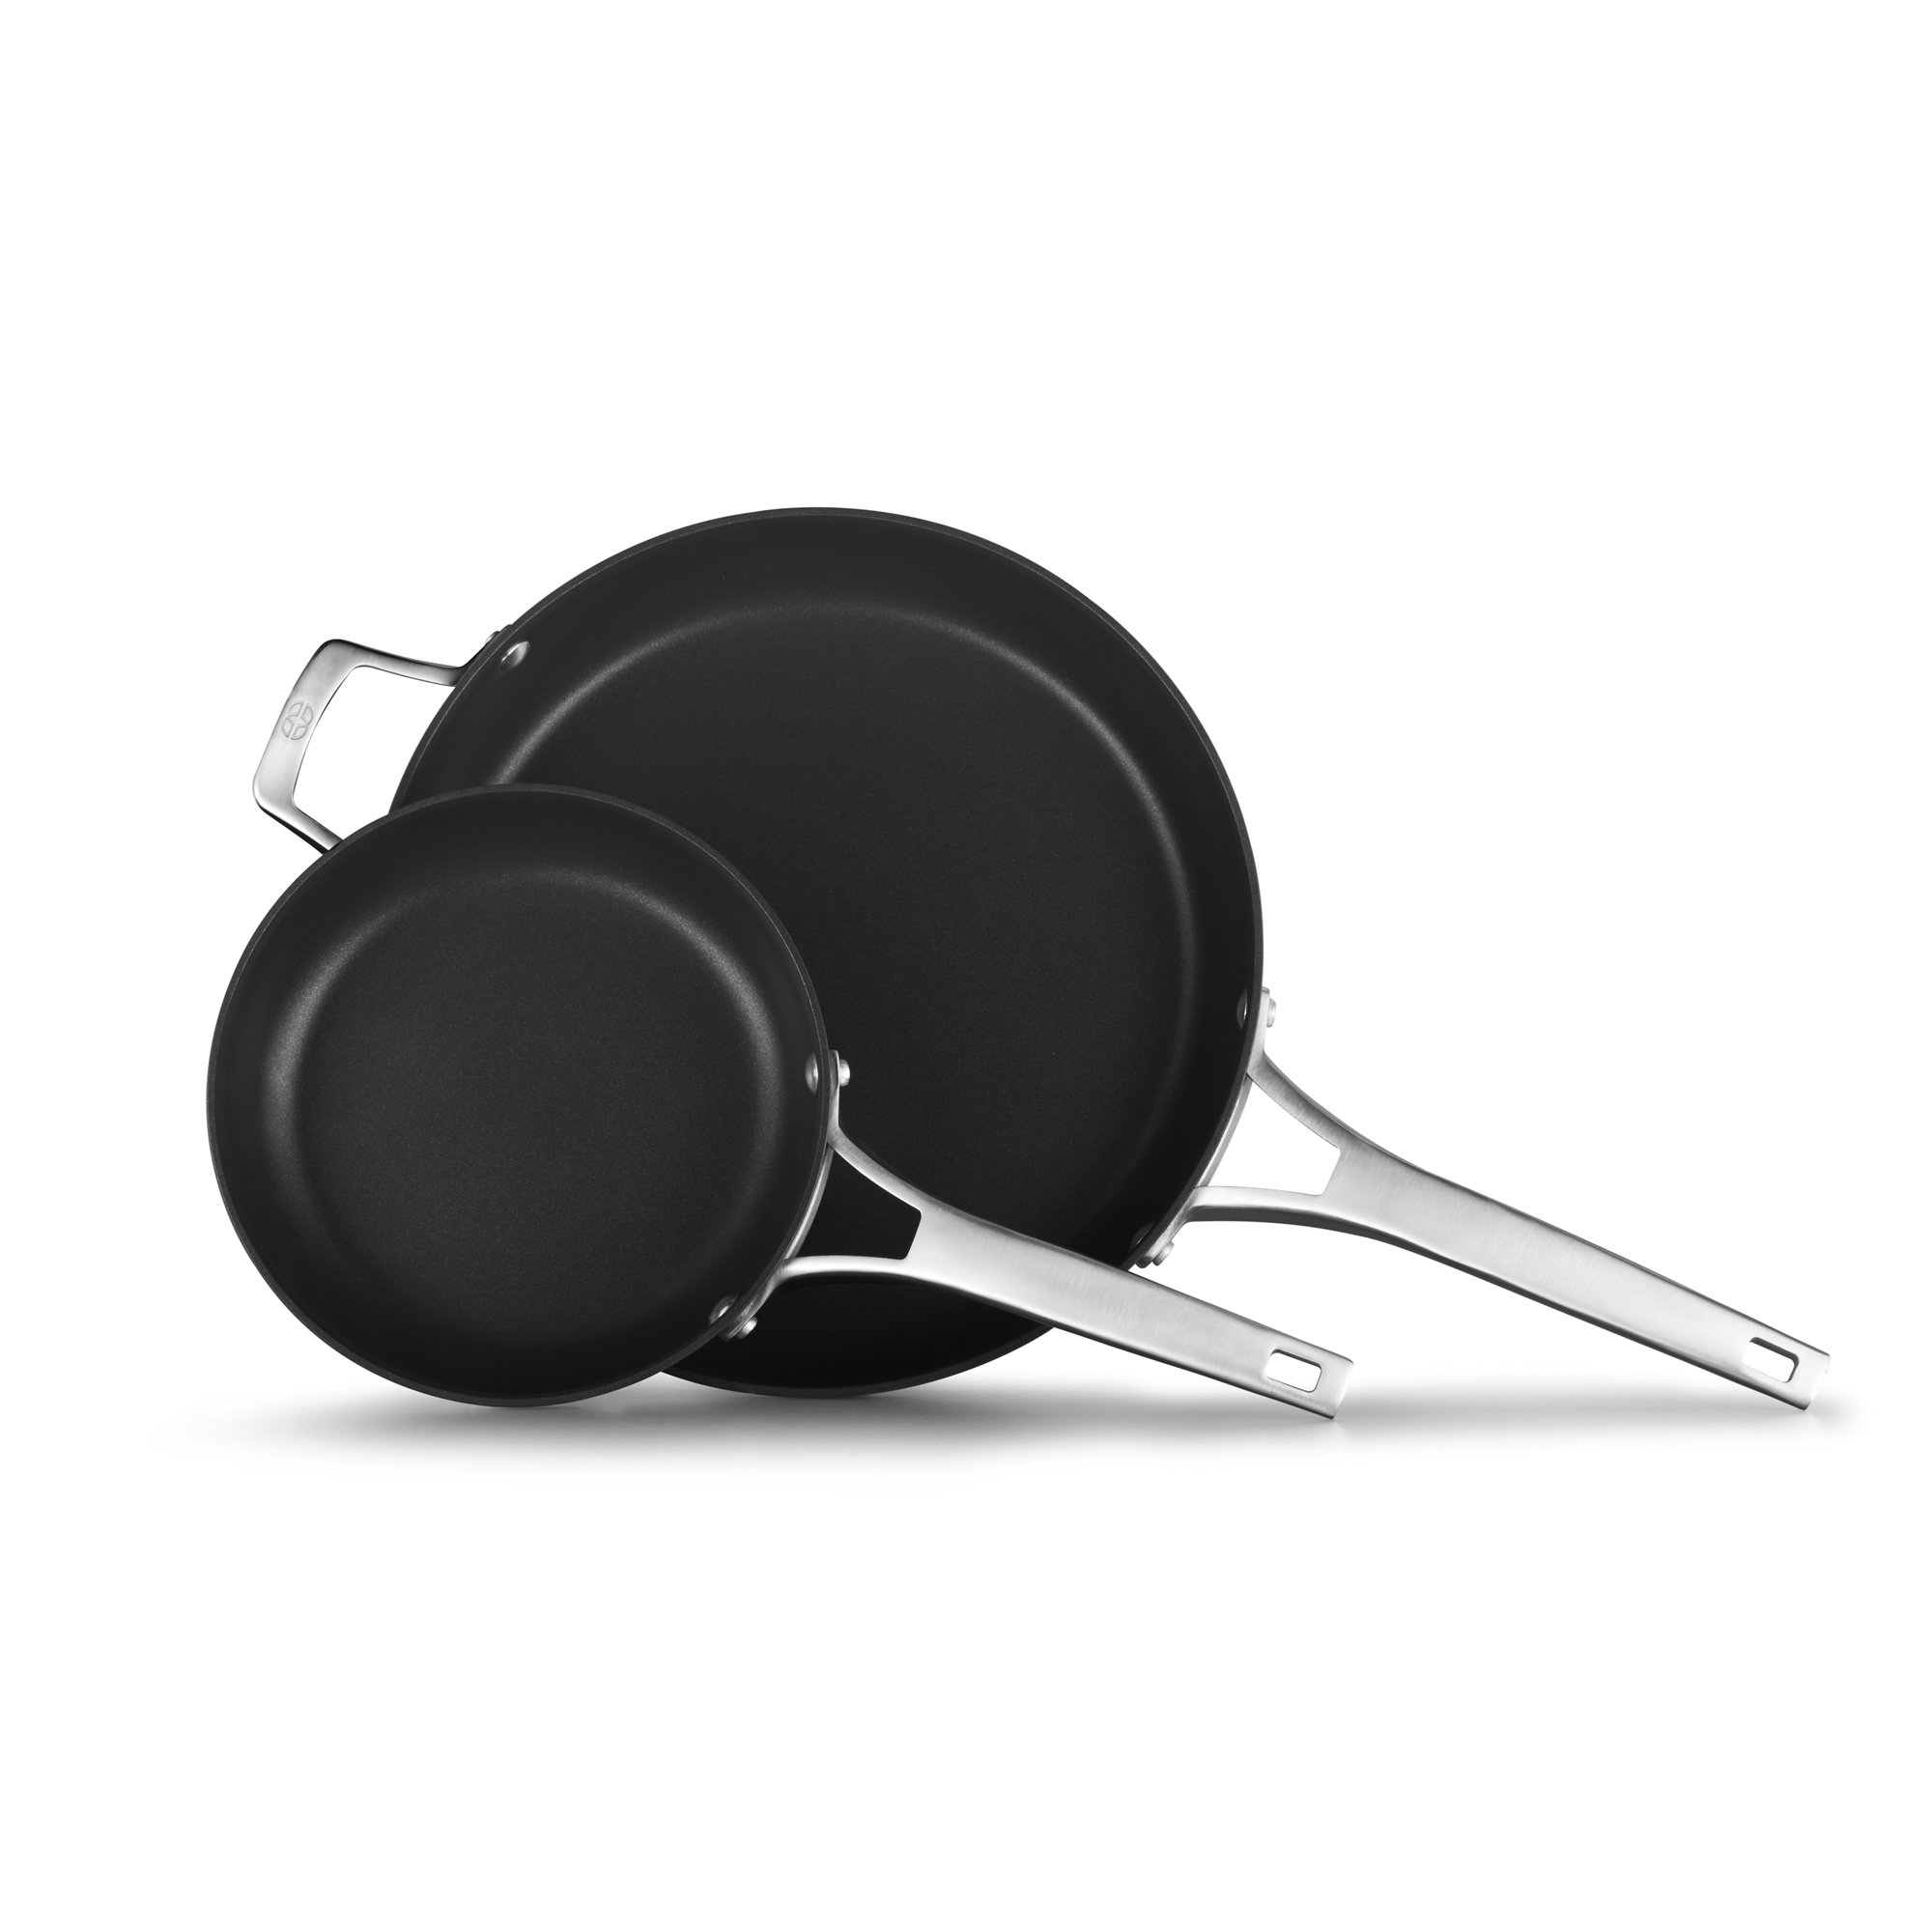 Calphalon Premier Hard-Anodized Nonstick 2-Piece 8-Inch and 12-Inch Frying Pan Set